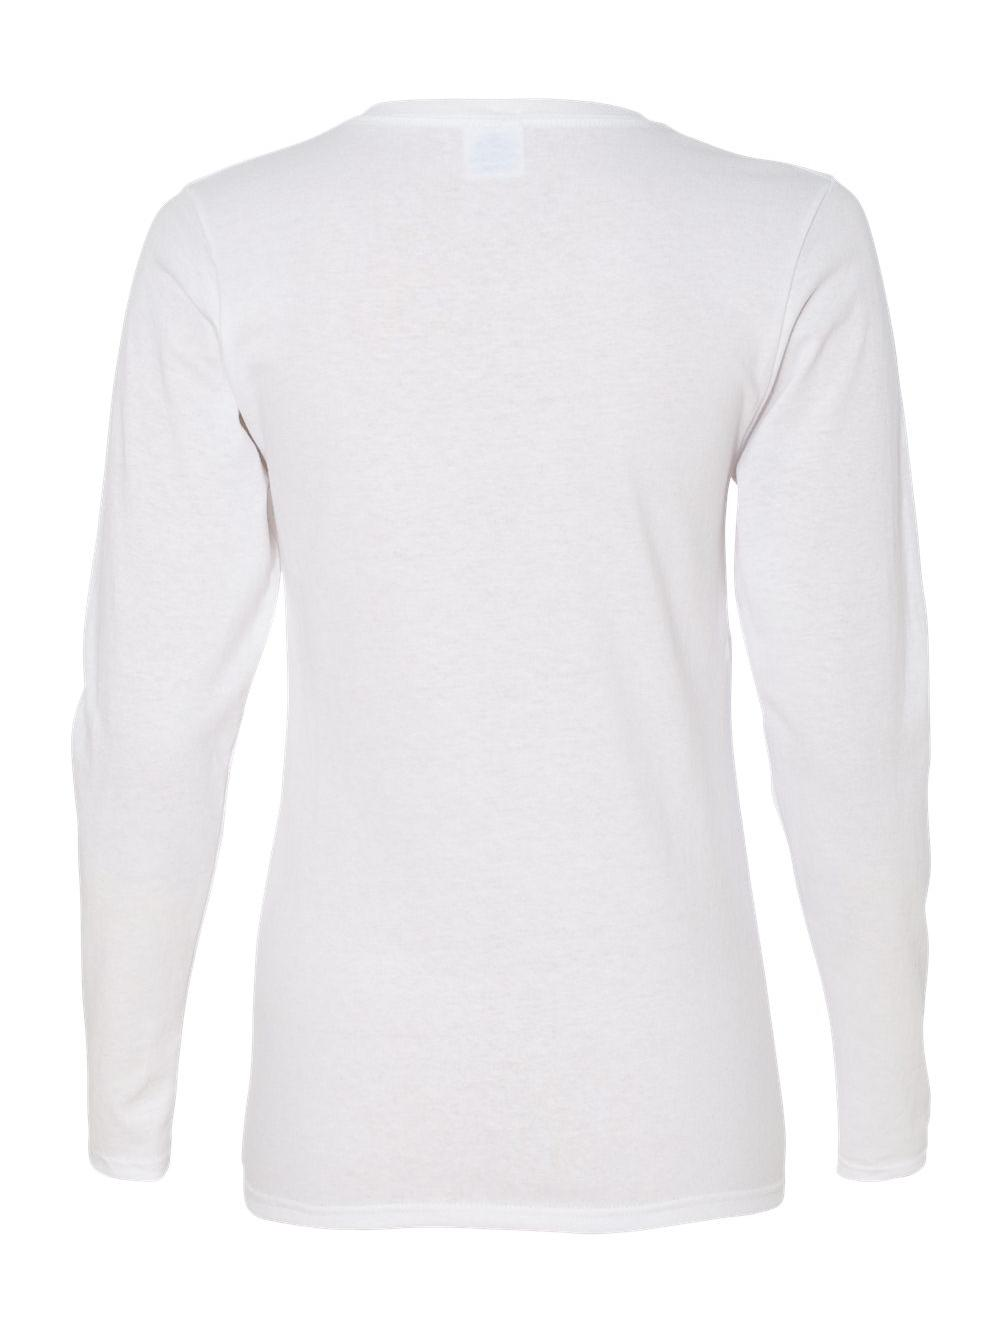 Gildan-Heavy-Cotton-Women-039-s-Long-Sleeve-T-Shirt-5400L thumbnail 10